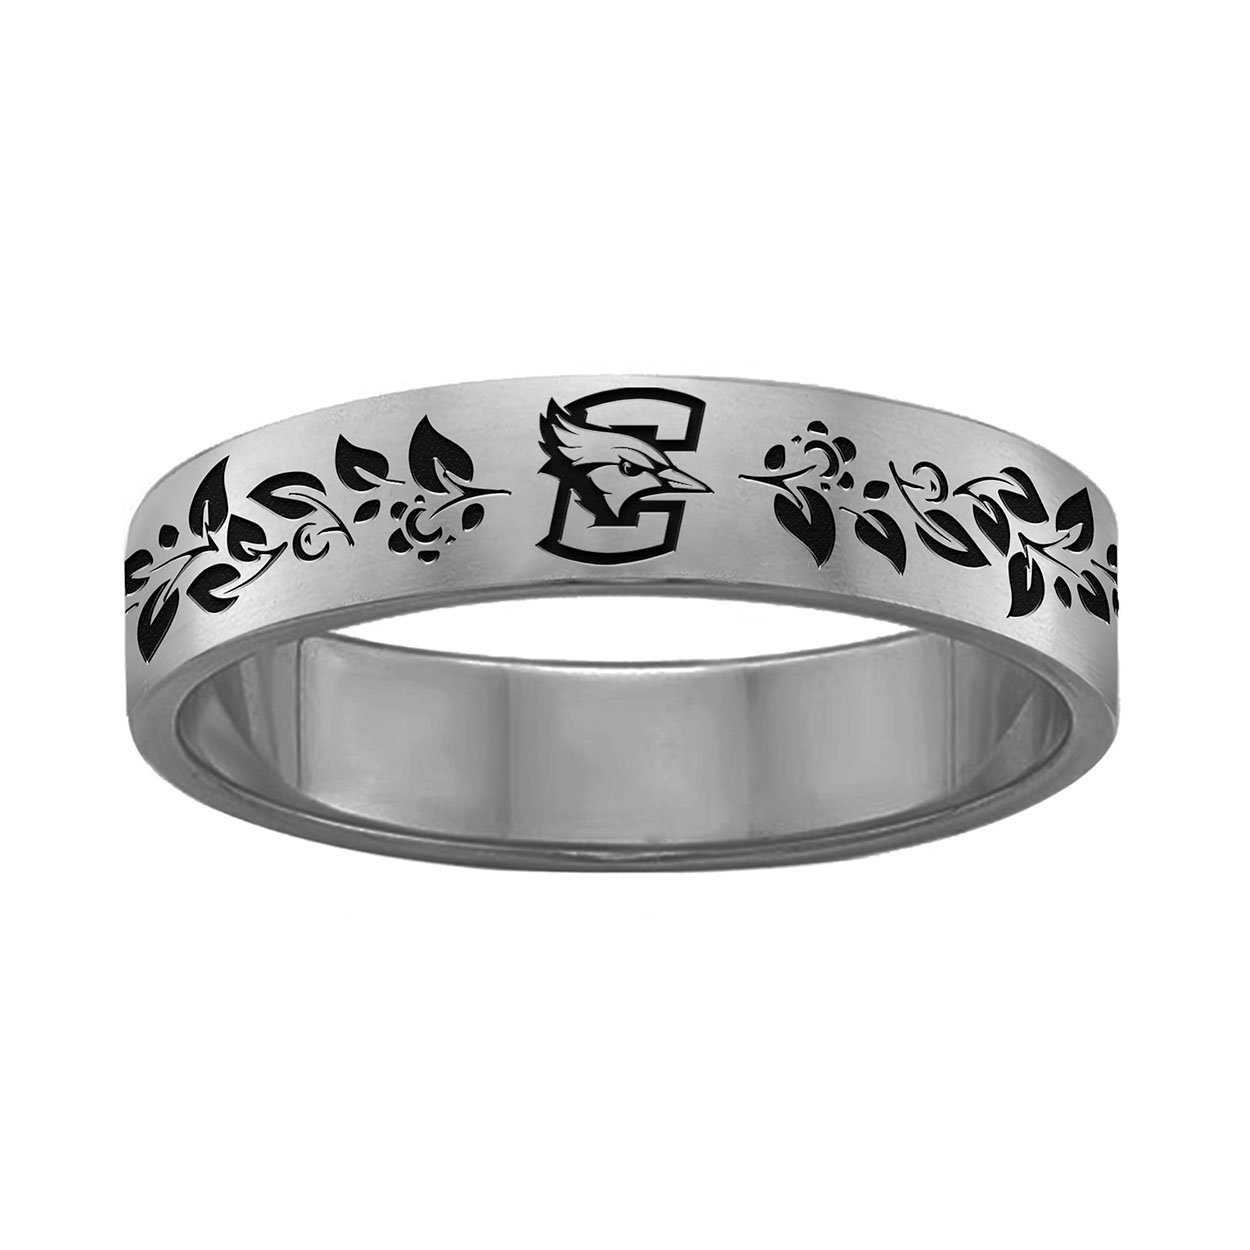 College Jewelry Organic Style Creighton University Bluejays Rings Stainless Steel 6MM Wide Ring Band Vine Design